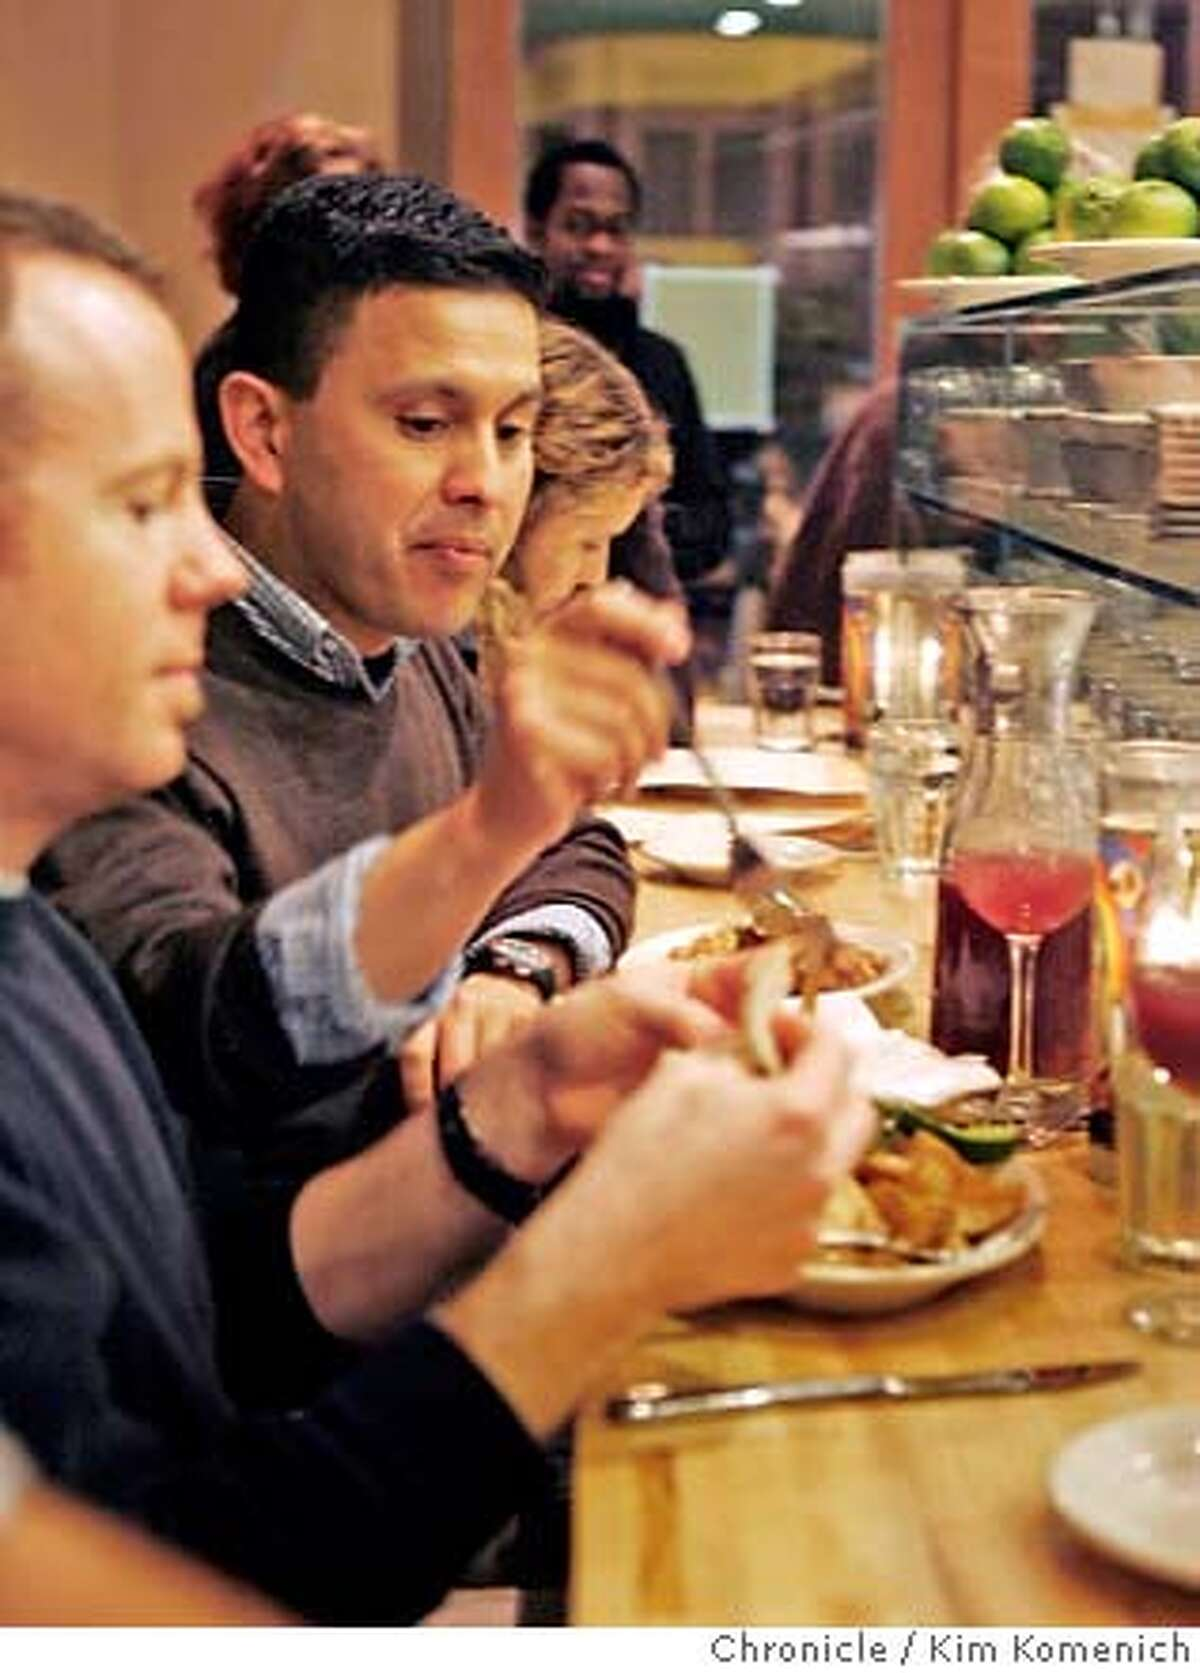 DINE18_048_KK.JPG Peter Chase, left, and Fernndo Castano have a meal at Regalito Rosticeria, a restaurant in the Mission District famous for using free range chicken and Niman Ranch beef in its Mexican dishes. Photo by Kim Komenich/The Chronicle **Peter Chase, Fernando Castano �2007, San Francisco Chronicle/ Kim Komenich MANDATORY CREDIT FOR PHOTOG AND SAN FRANCISCO CHRONICLE. NO SALES- MAGS OUT.